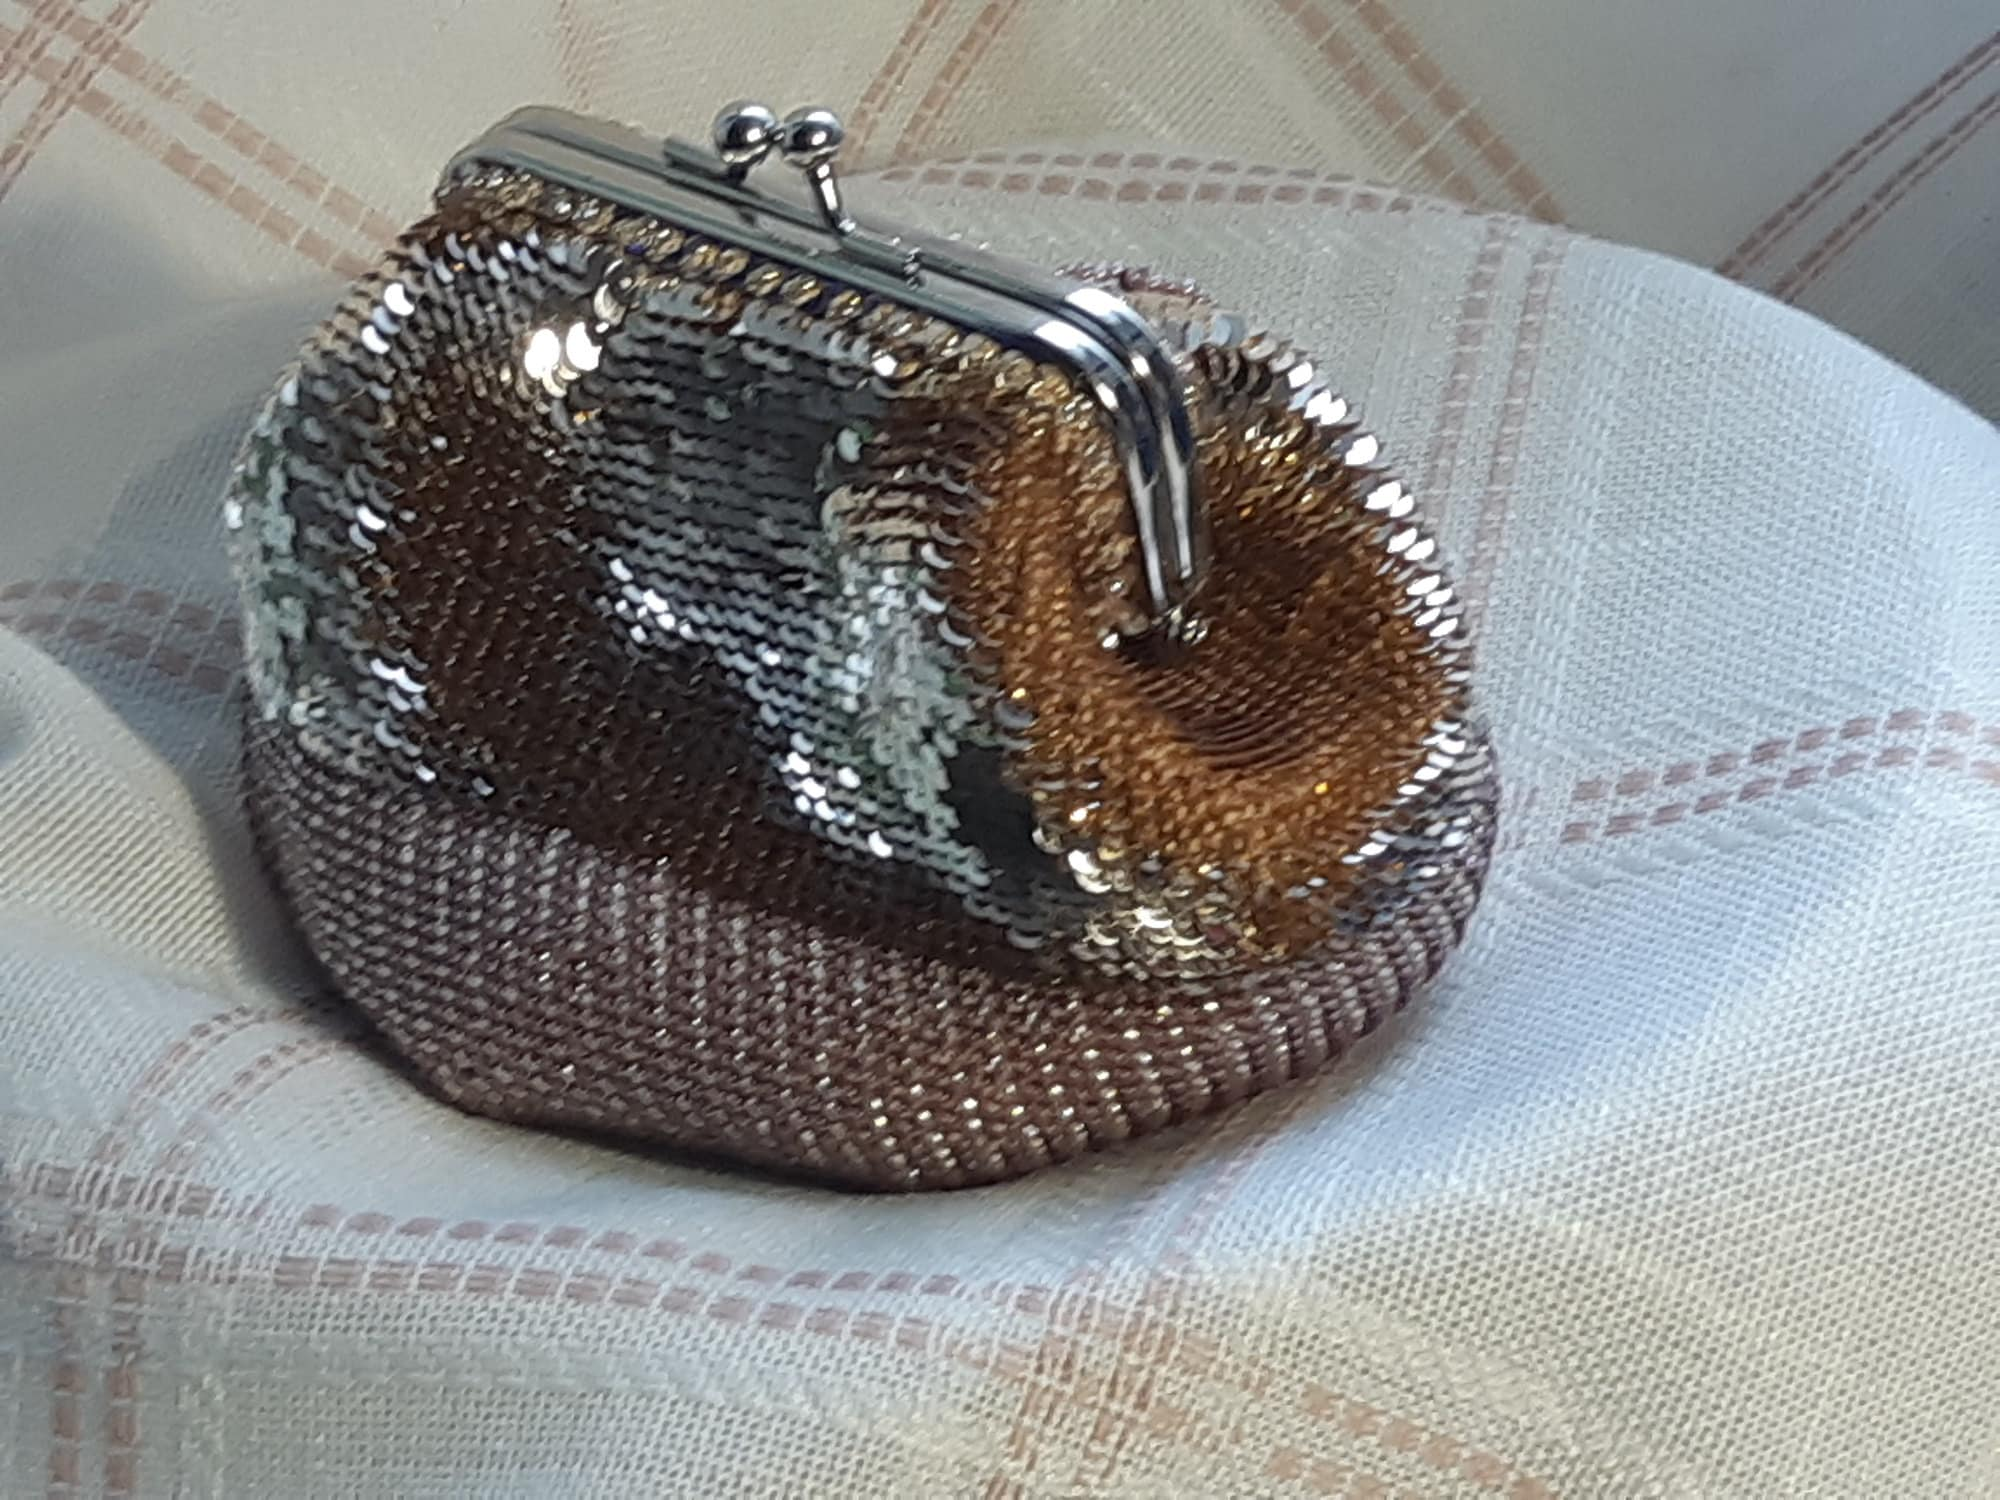 Elegant purse made of sequins and beads image 1